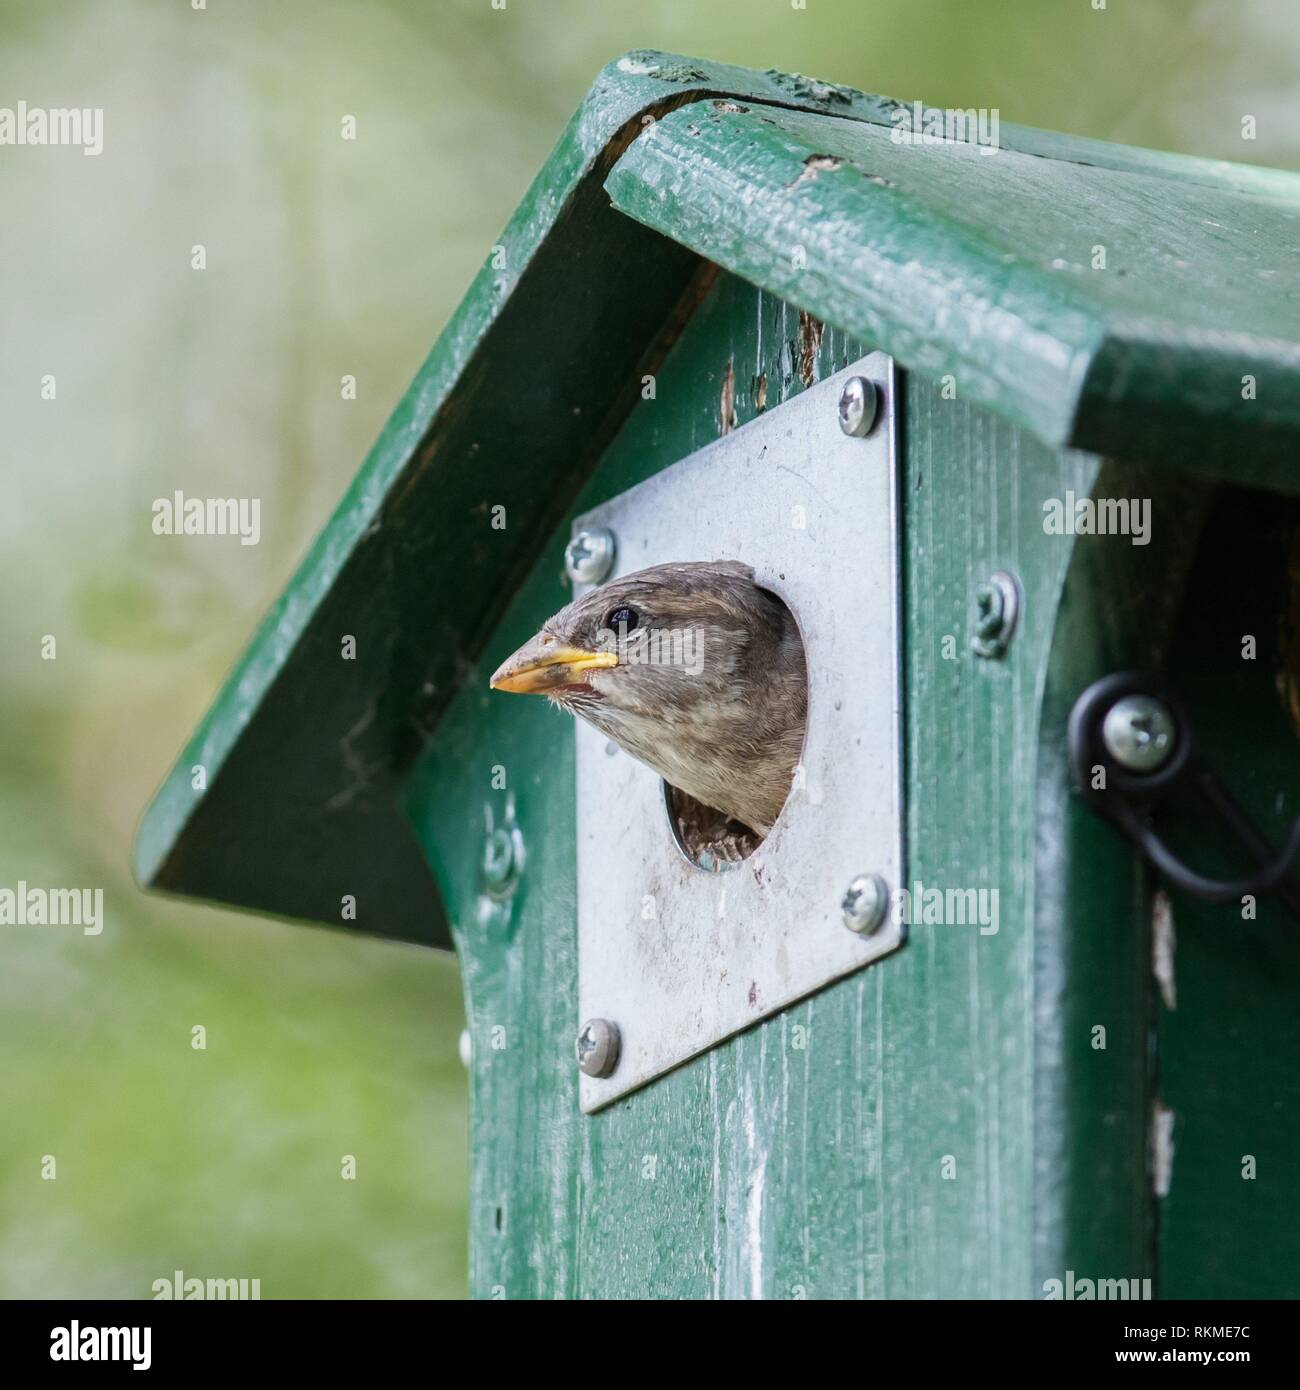 Young sparrow sitting in a green birdhouse. - Stock Image